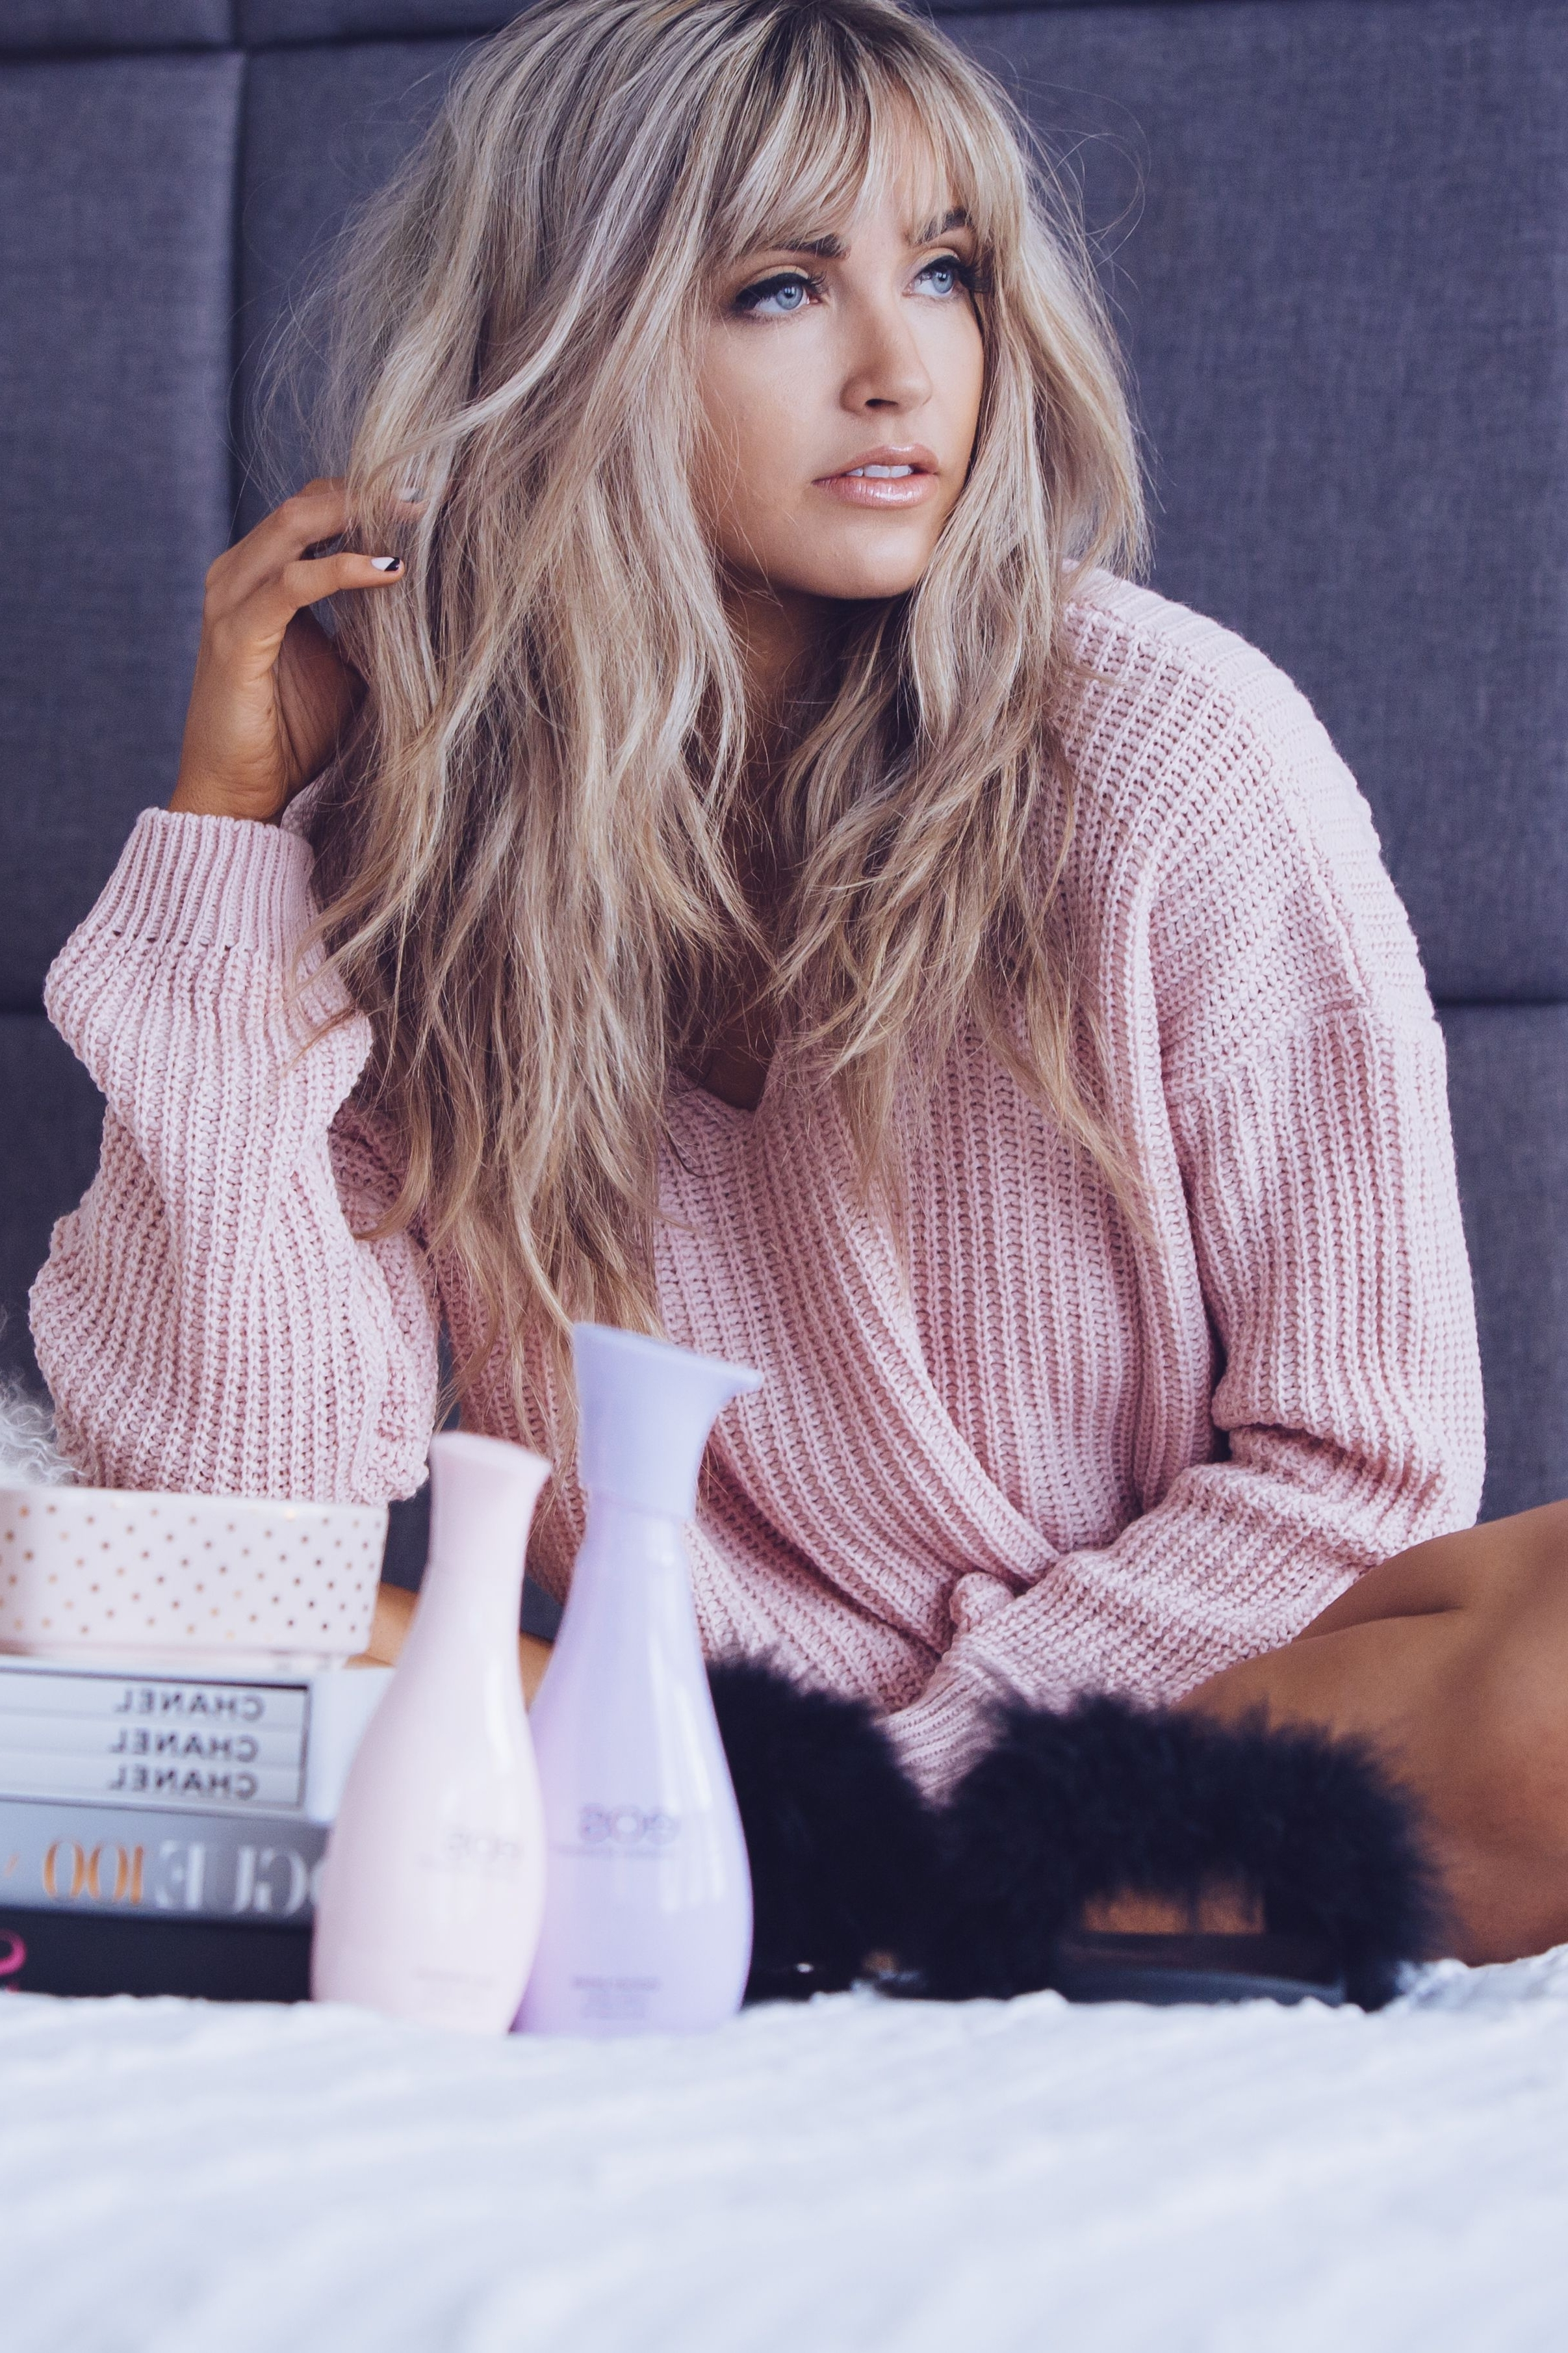 Favorite Casual Bright Waves Blonde Hairstyles With Bangs With 57 Of The Most Beautiful Long Hairstyles With Bangs (View 9 of 20)